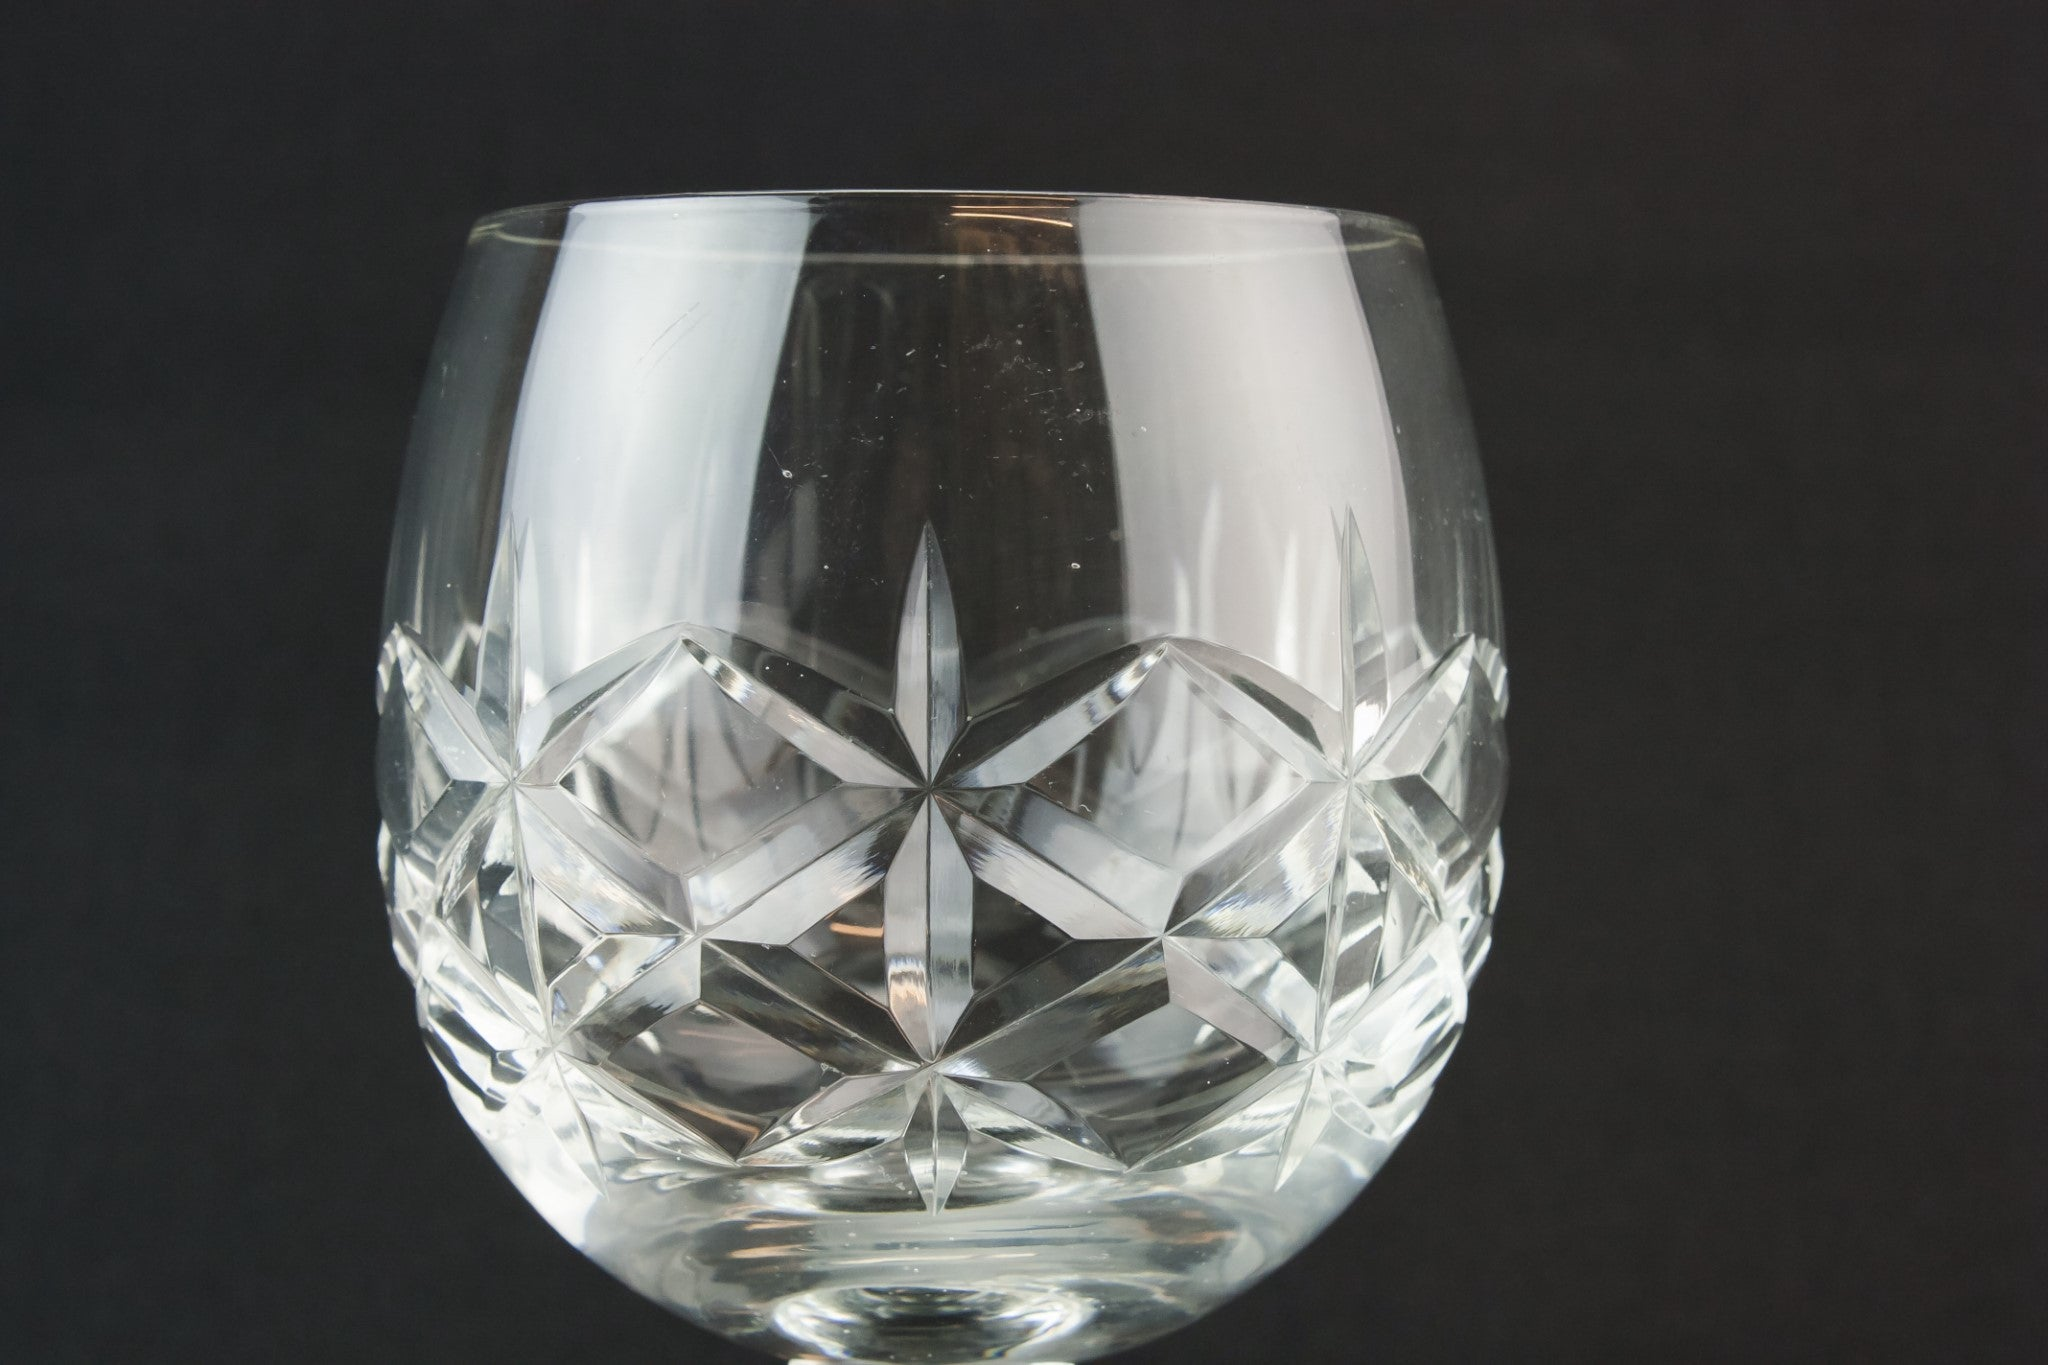 5 stem wine glasses